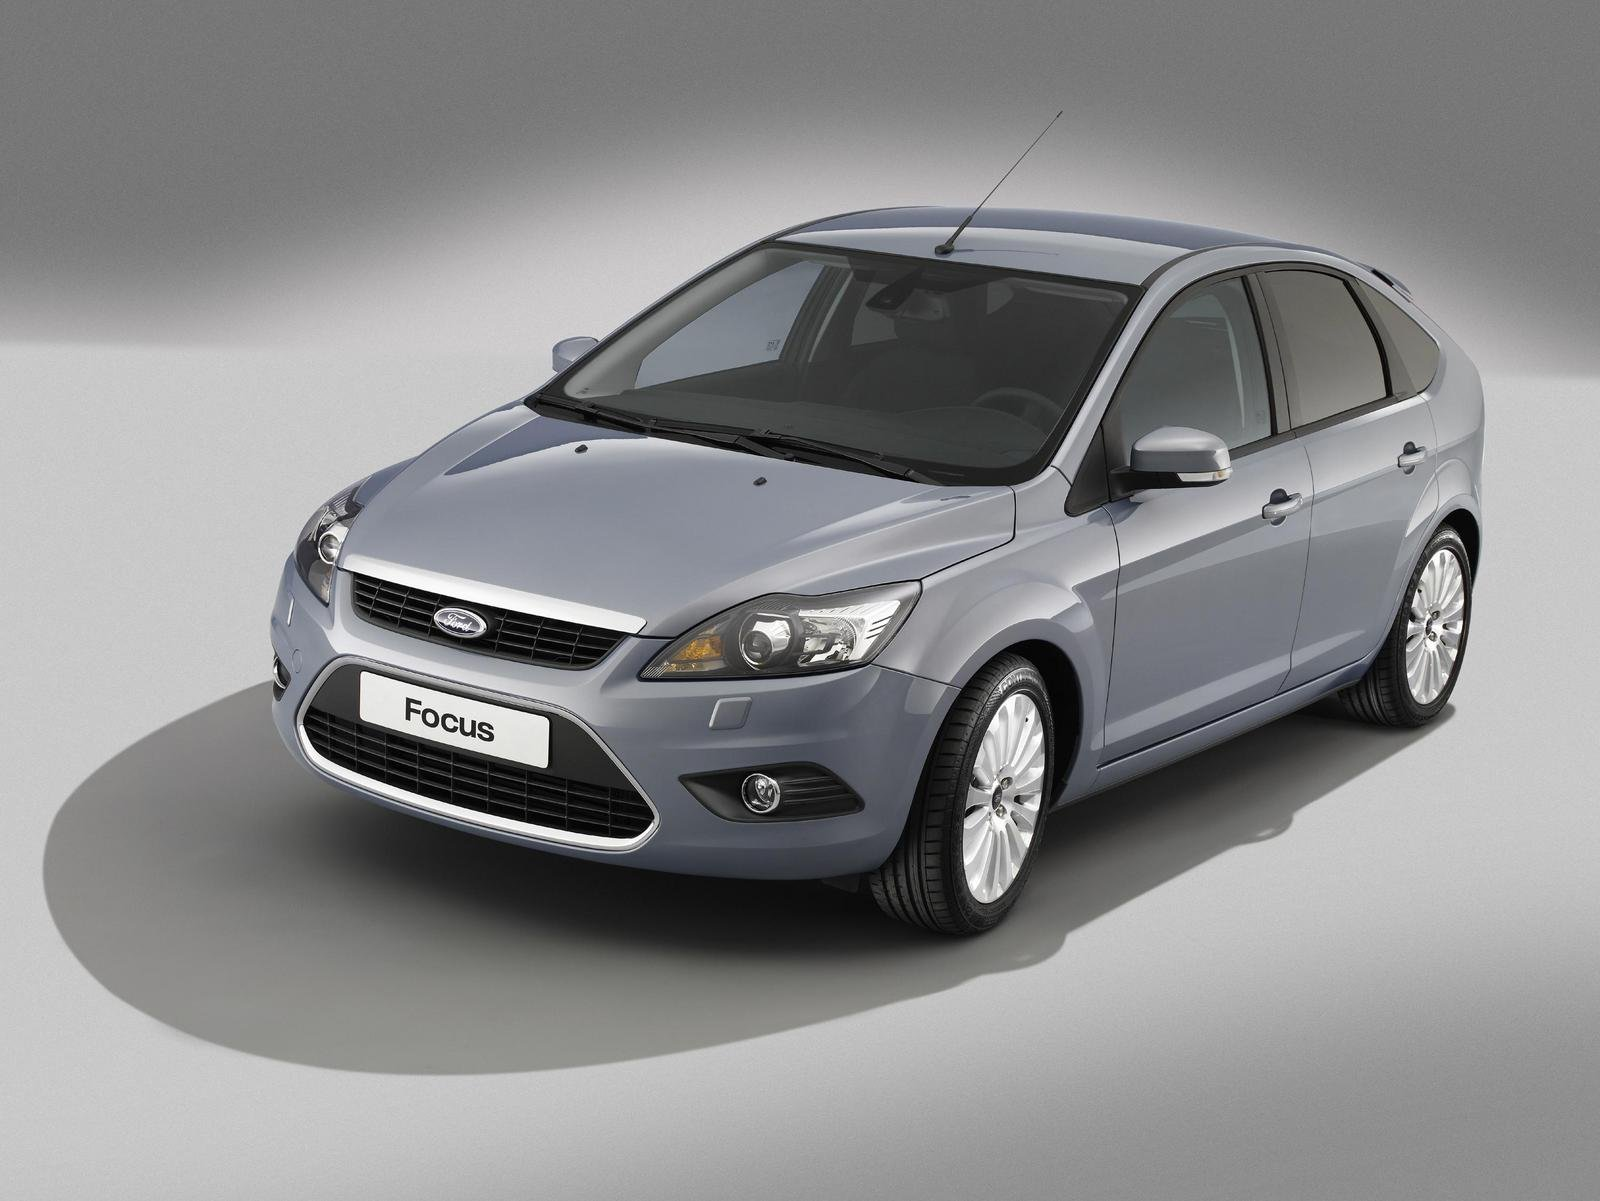 2008 Ford Focus Review - Top Speed